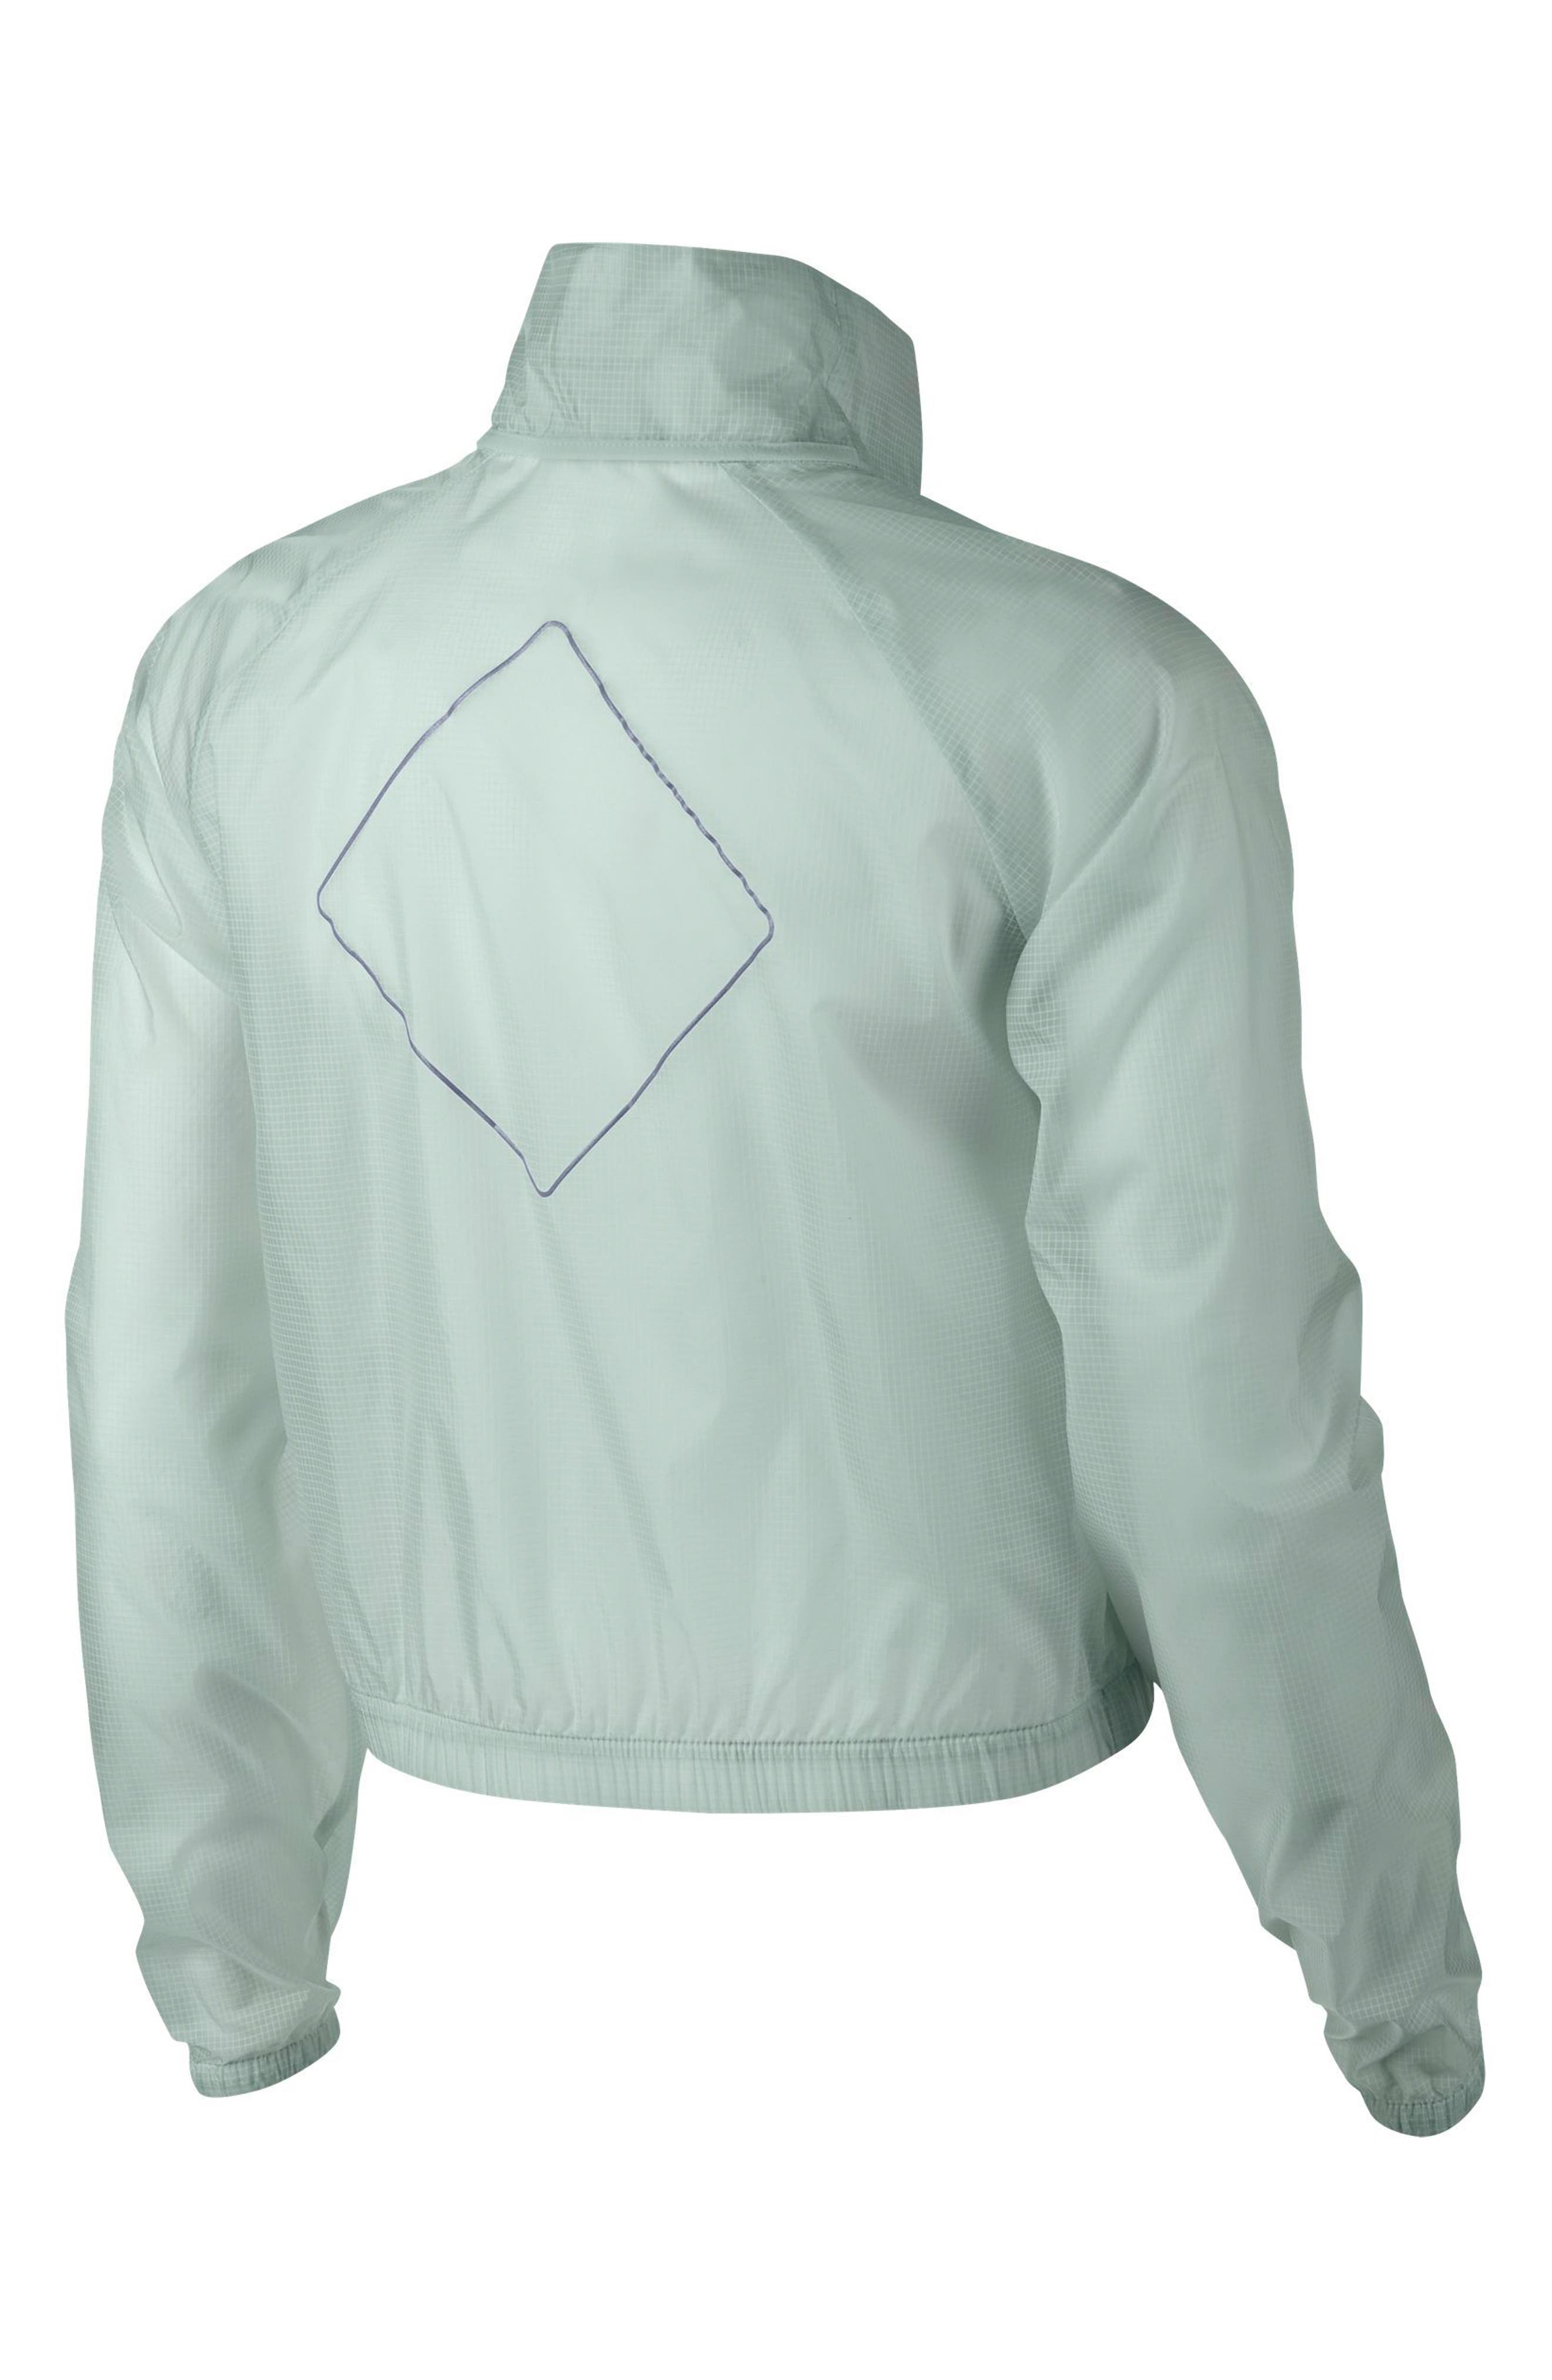 Transparent Running Jacket,                             Alternate thumbnail 8, color,                             026